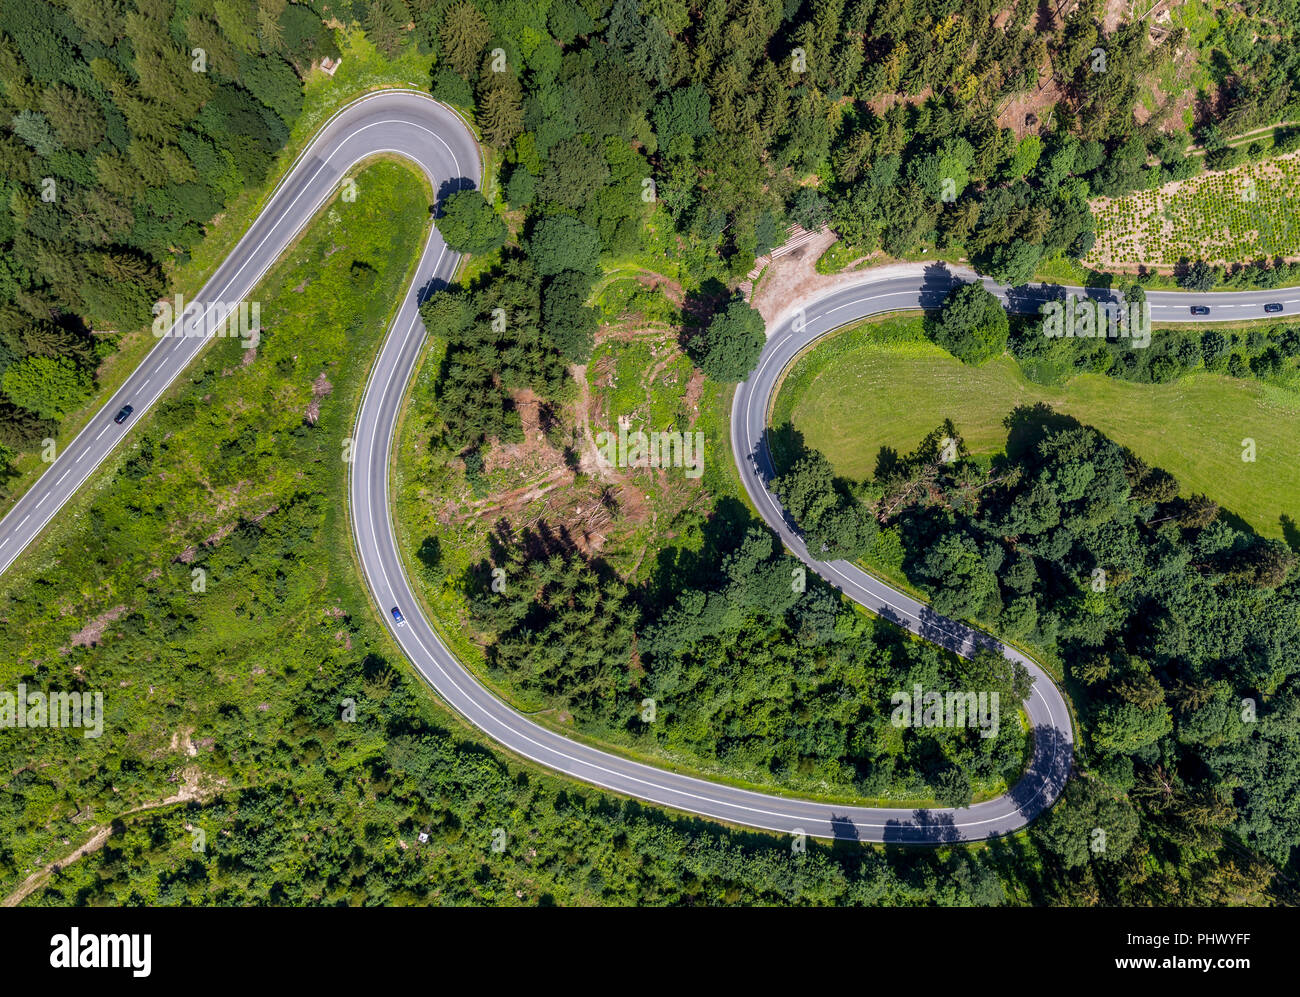 Hairpin bends, Am Bilstein, Highway L870, Motorcycle route with dangerous curves, Brilon, Sauerland, North Rhine-Westphalia, Germany, DEU, Europe, aer Stock Photo